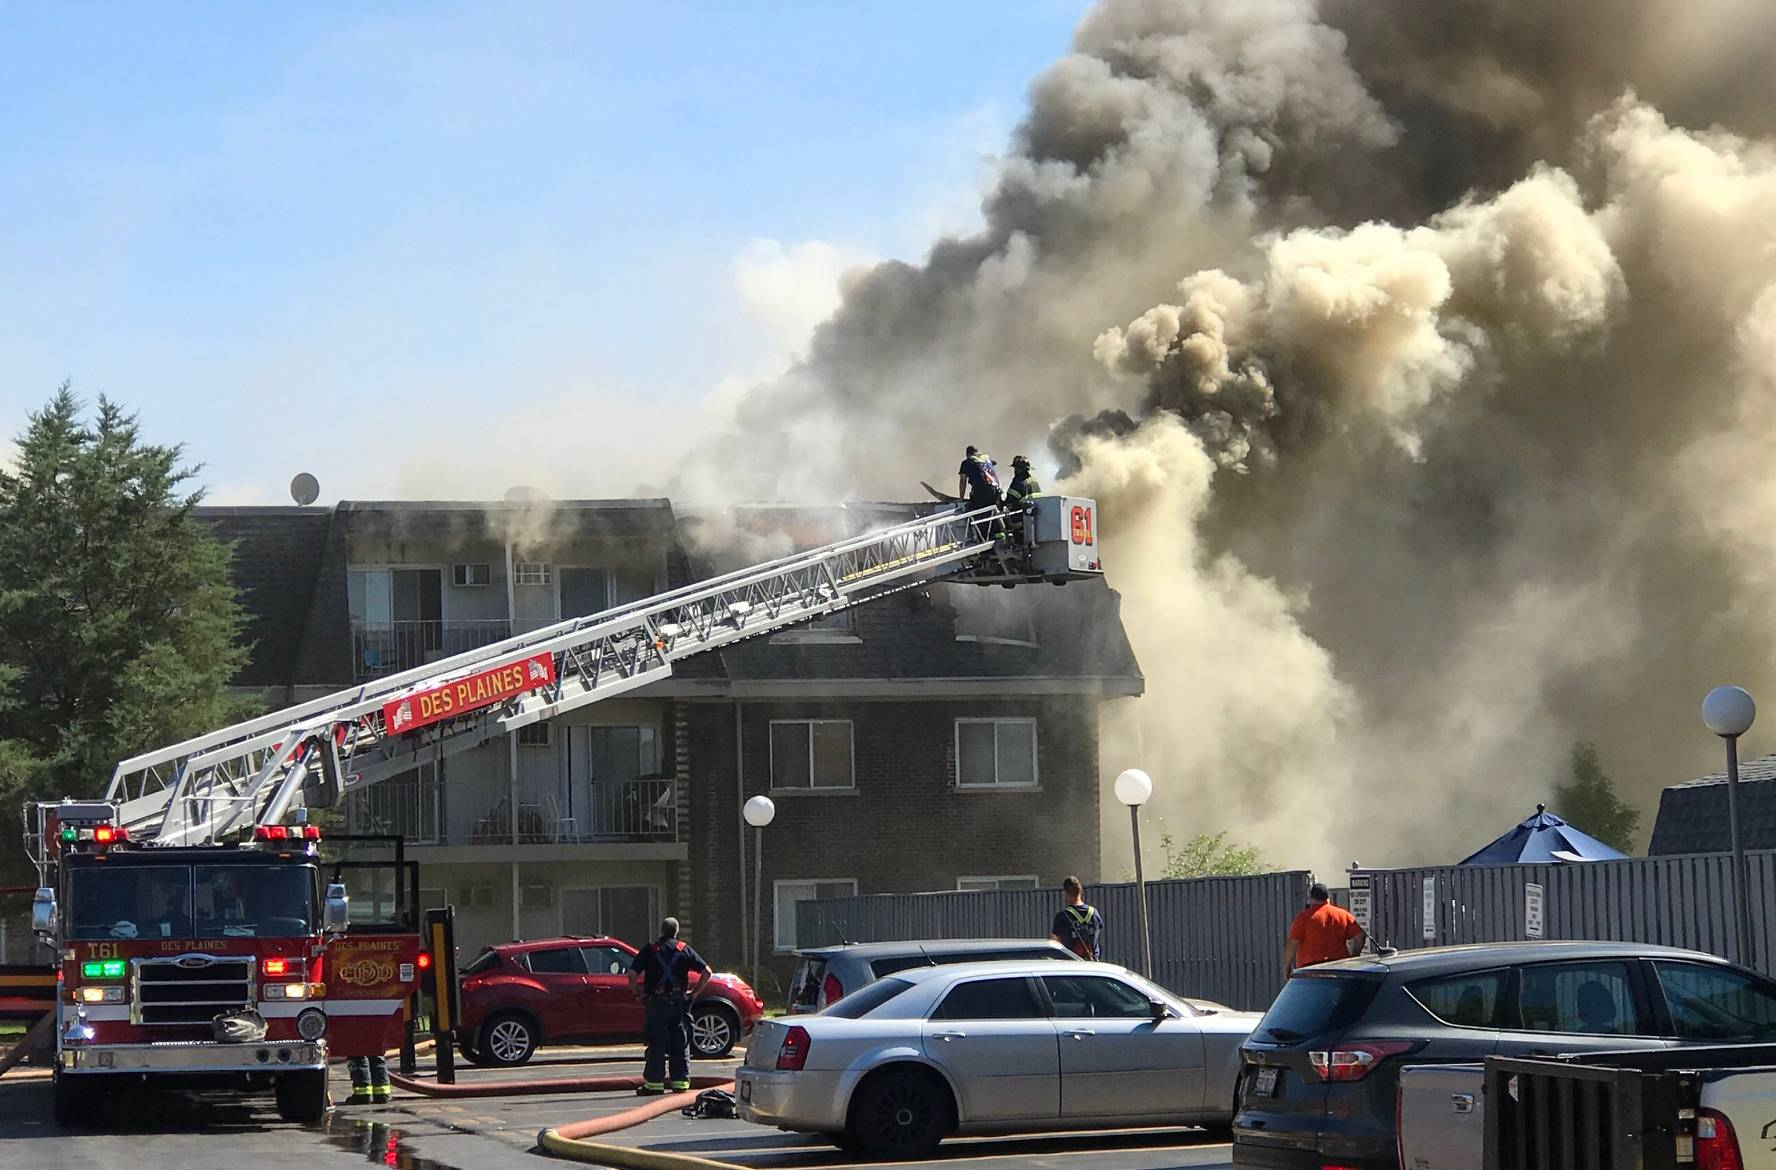 A five-alarm fire tore through a Prospect Heights apartment complex Wednesday afternoon, leaving many residents homeless and keeping firefighters from across the suburbs busy for hours.